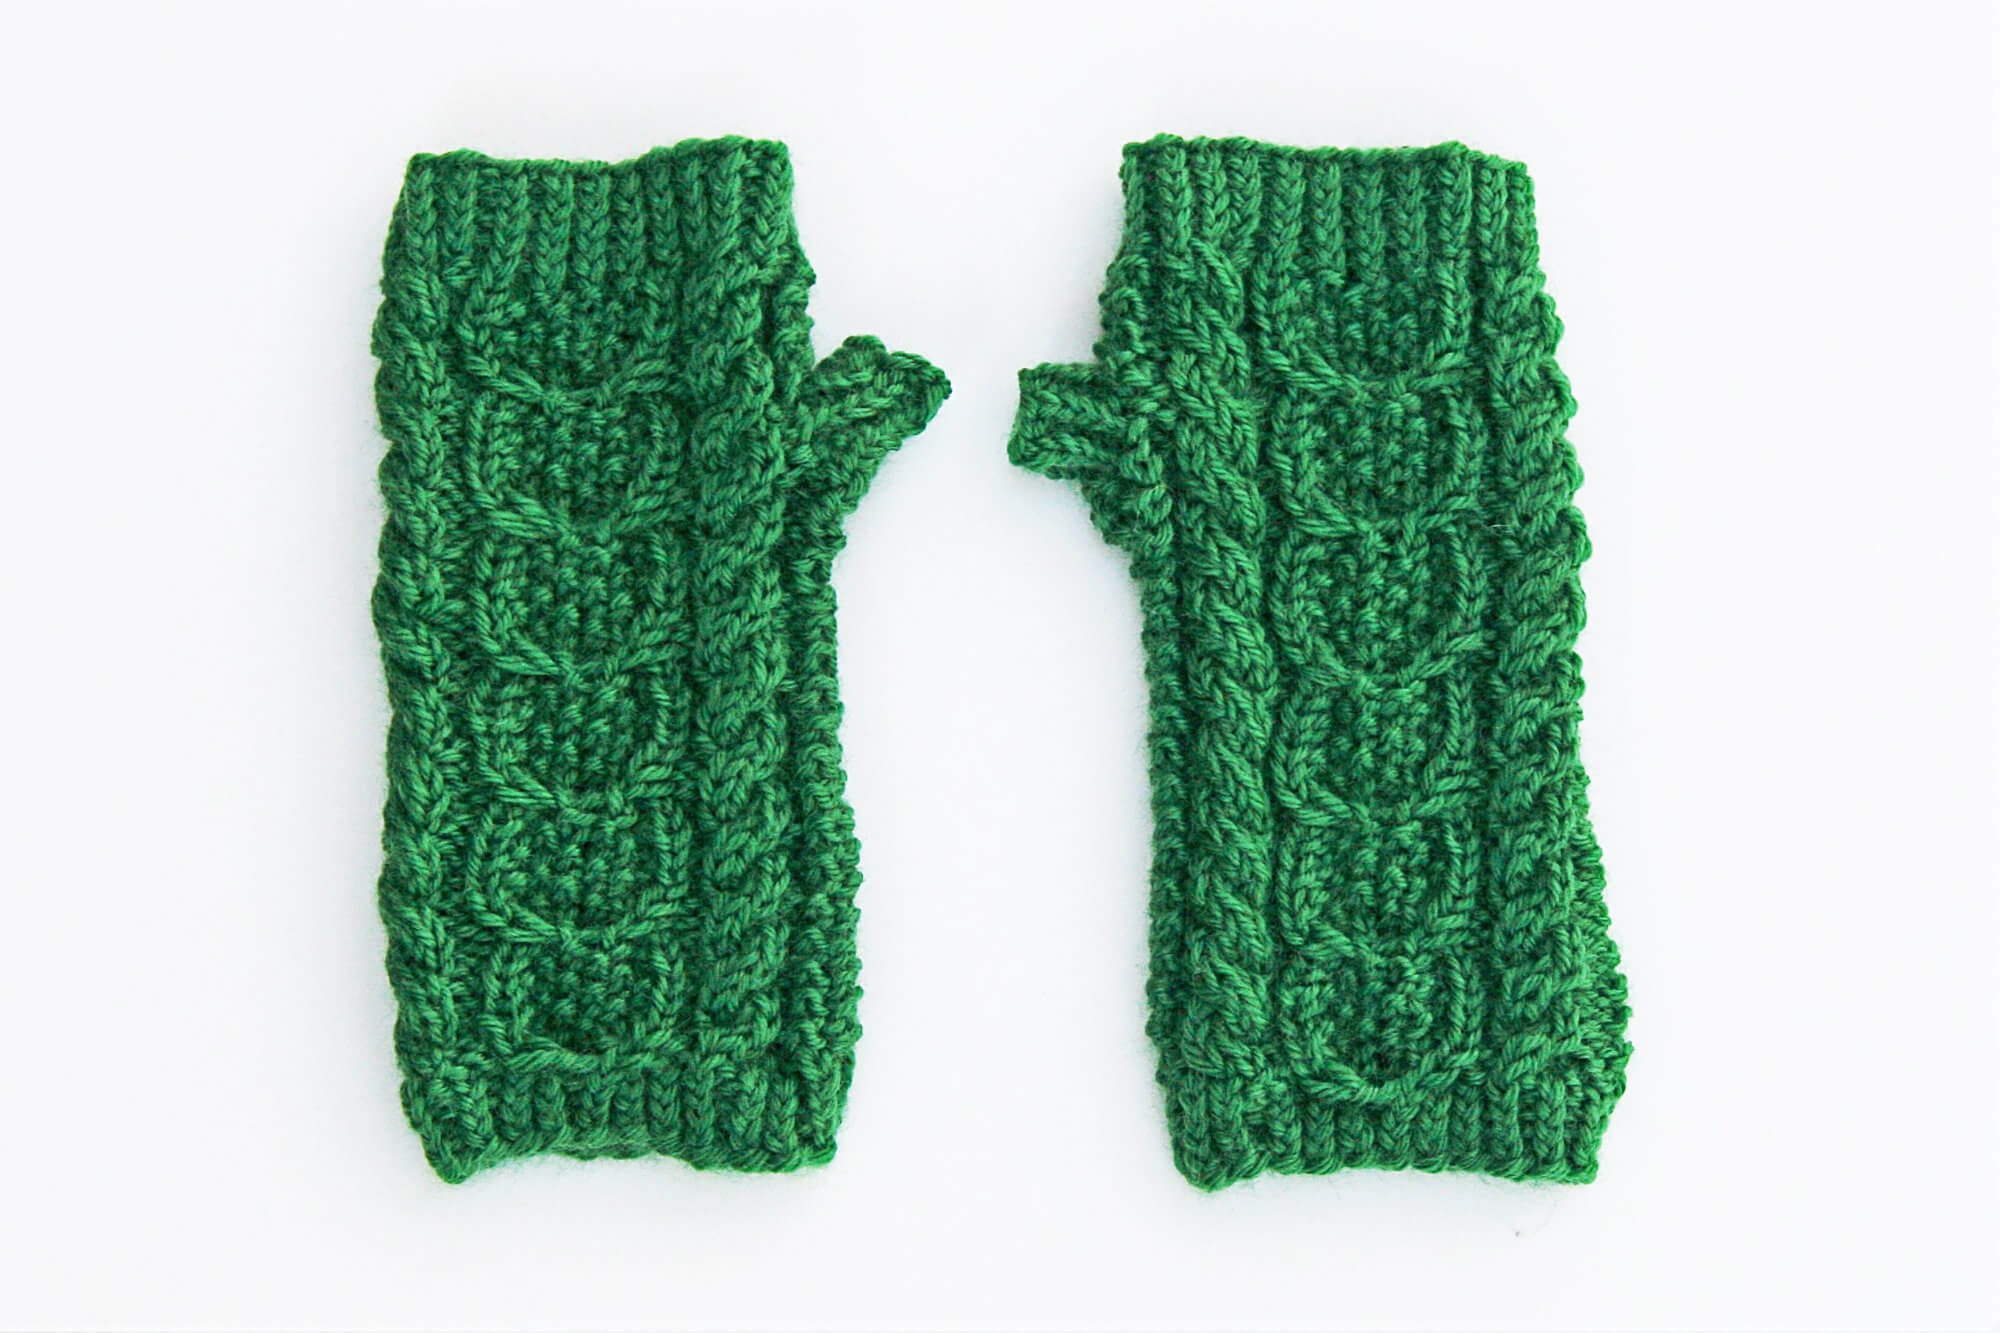 Caiseal Mitts shown in green